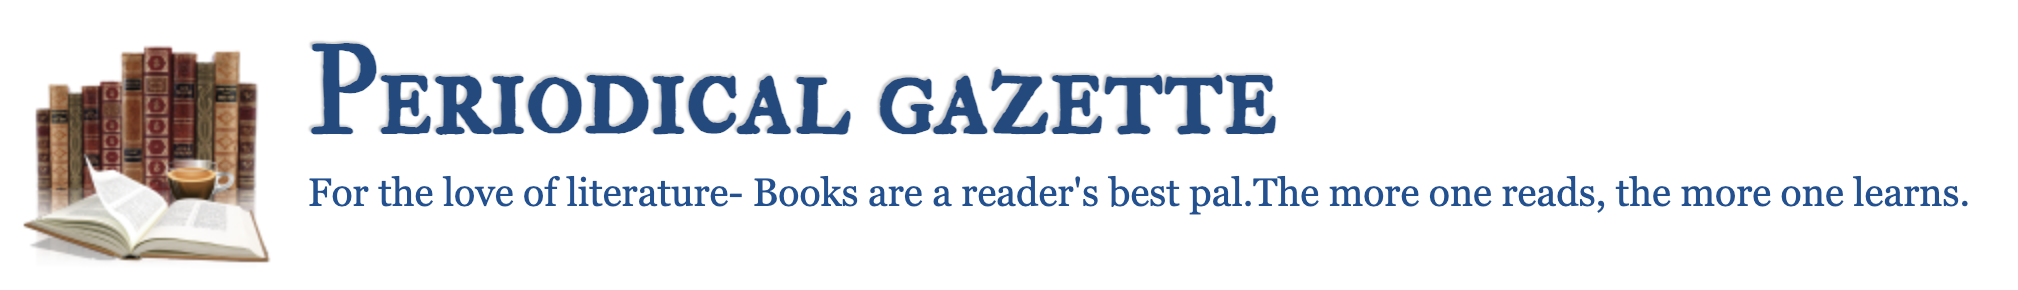 Periodical Gazette